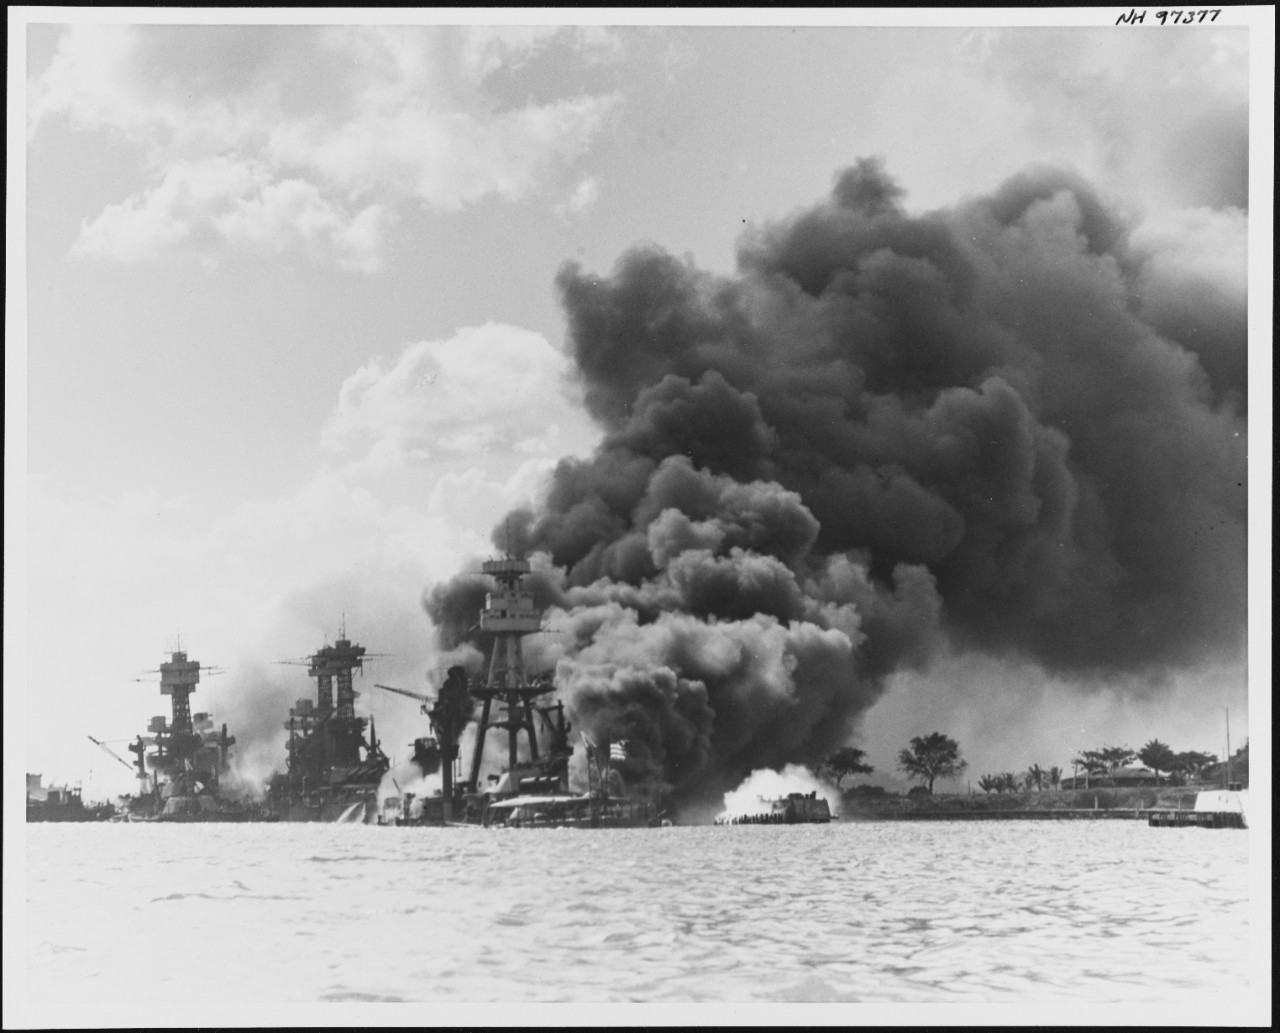 Photo #: NH 97377  Pearl Harbor Attack, 7 December 1941